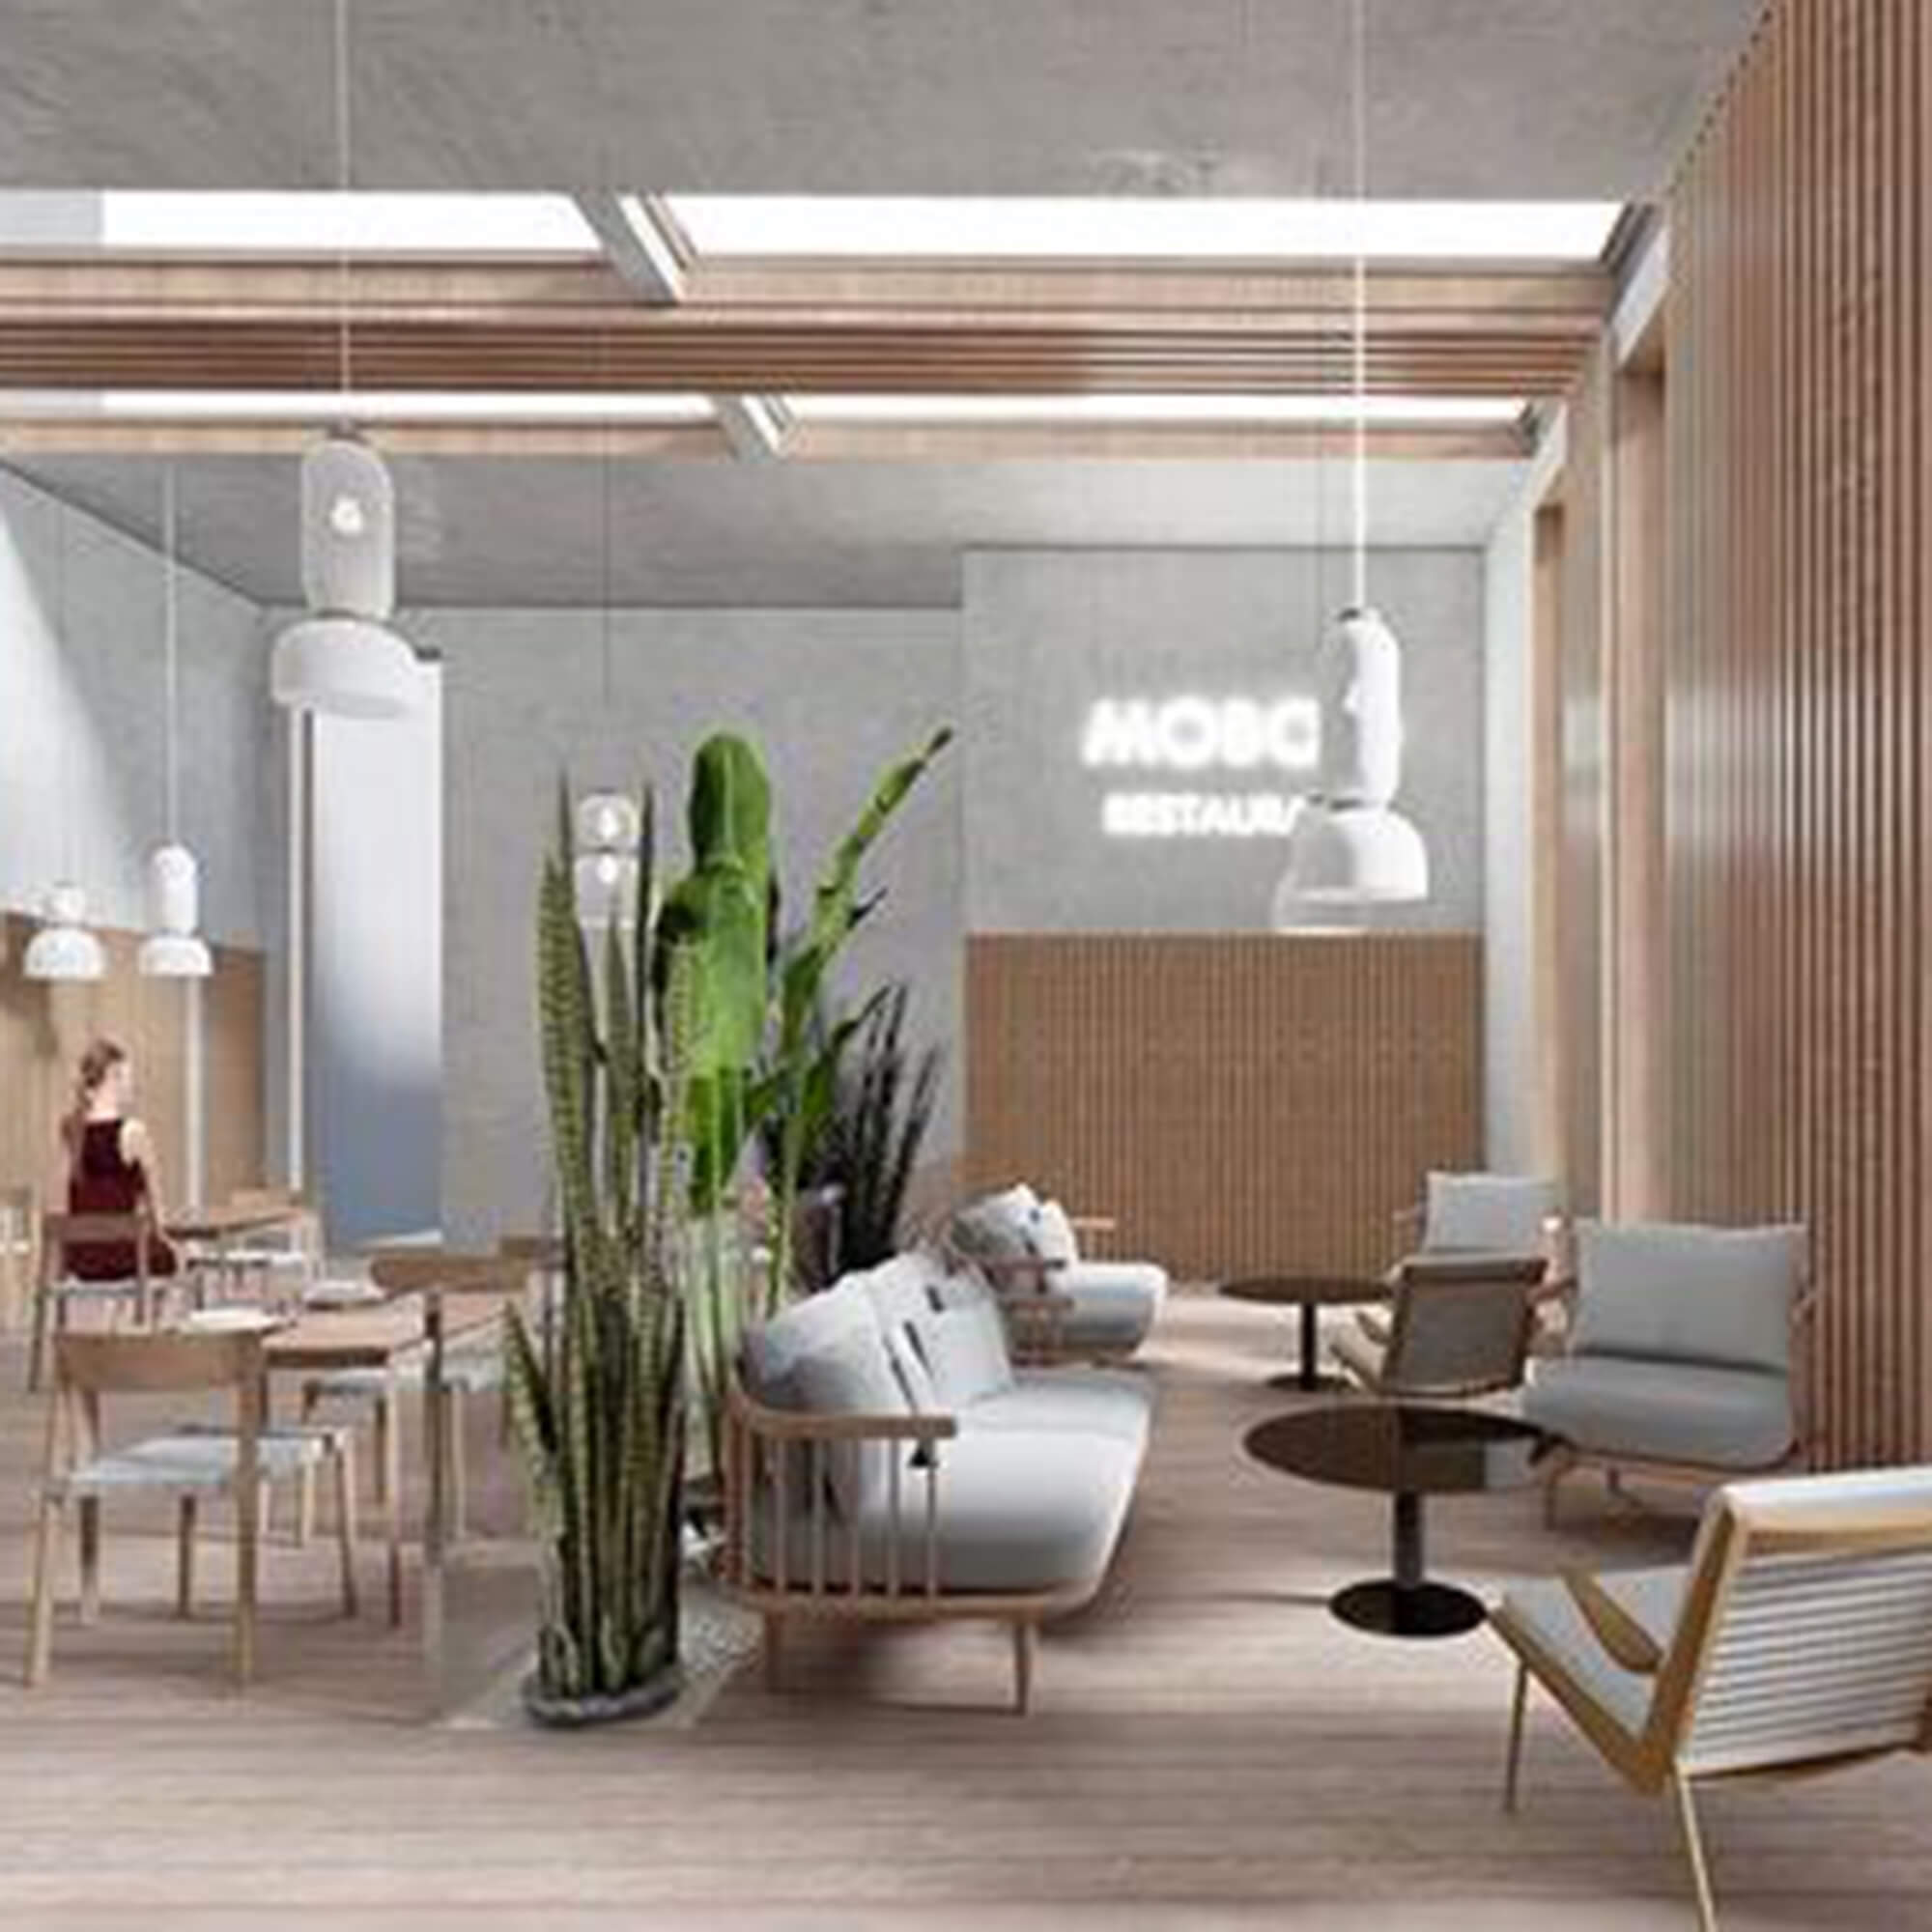 Monika Blauciak design of interior restaurant, including white and wood chairs, large plants, and white pendant lights hanging from the ceiling